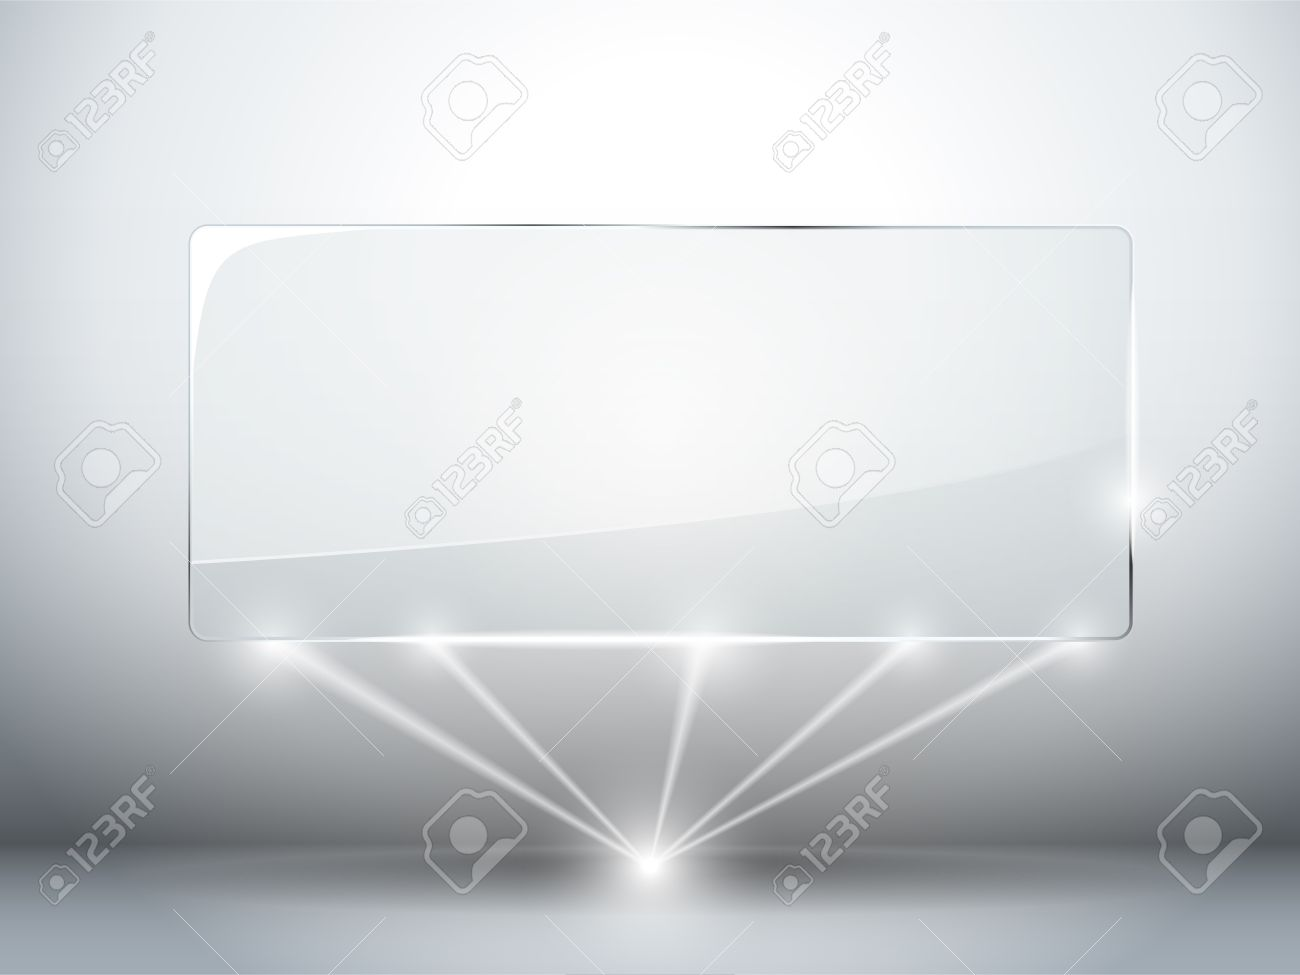 Glass Plate Background with Lasers Stock Vector - 14220893